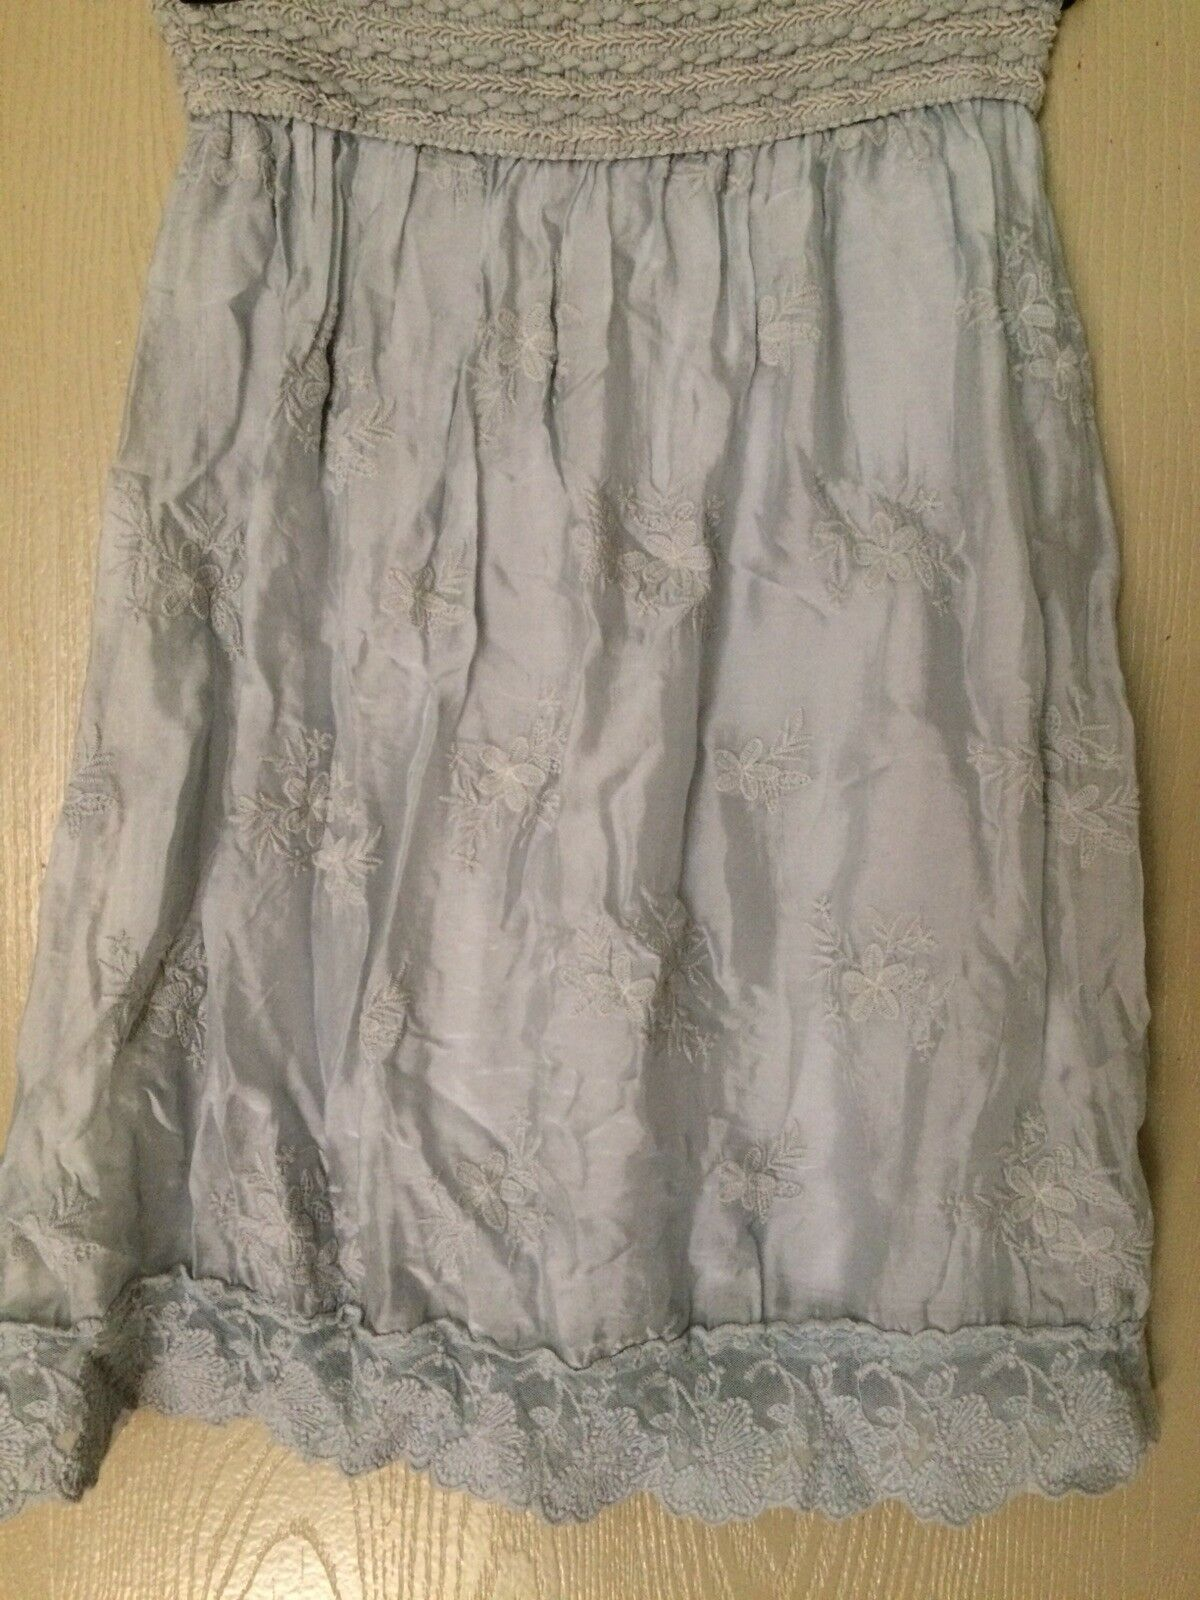 New ITALY S silk and cotton embroidered delicate skirt lace elastic  light bluee